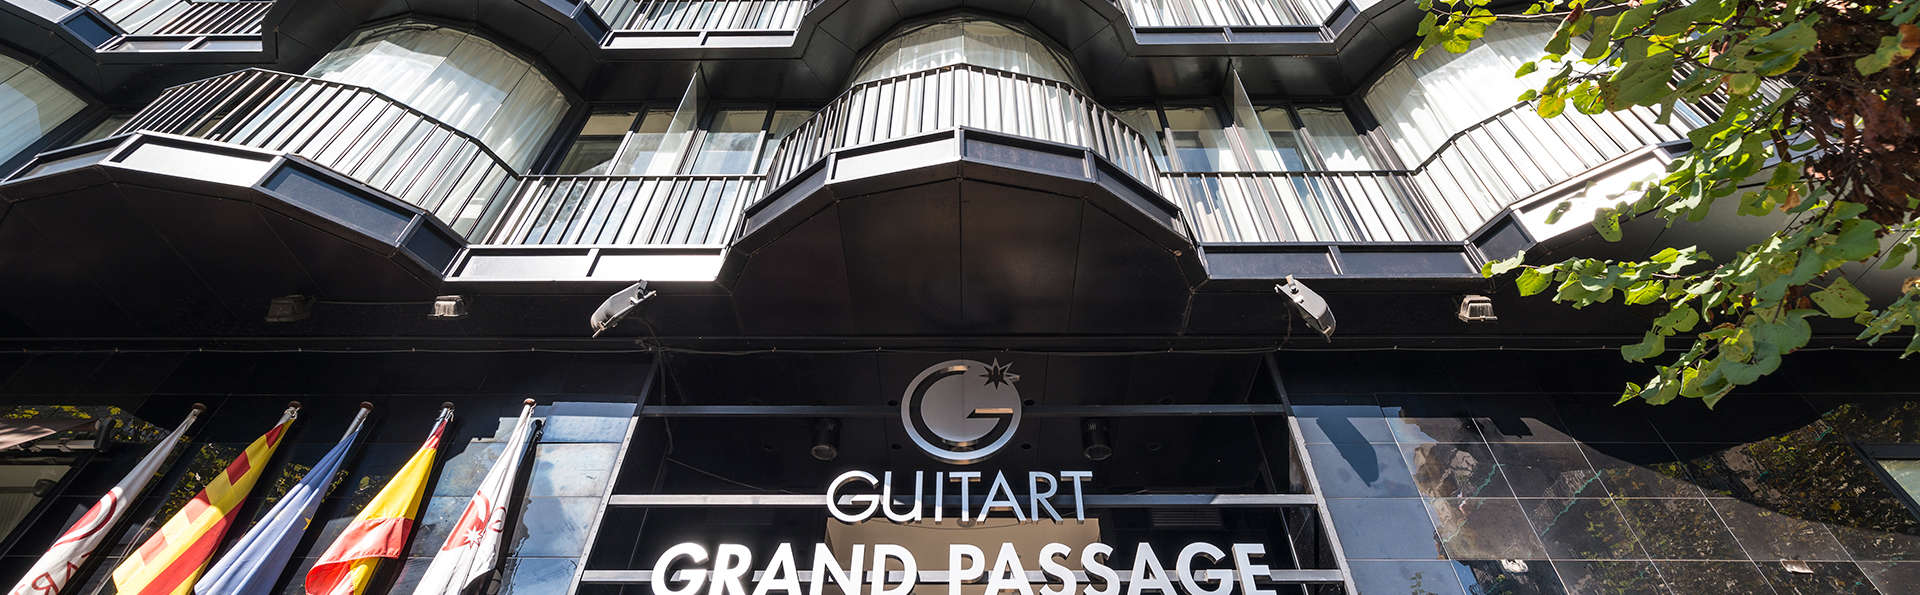 Hotel Guitart Grand Passage - EDIT_front_A2.jpg